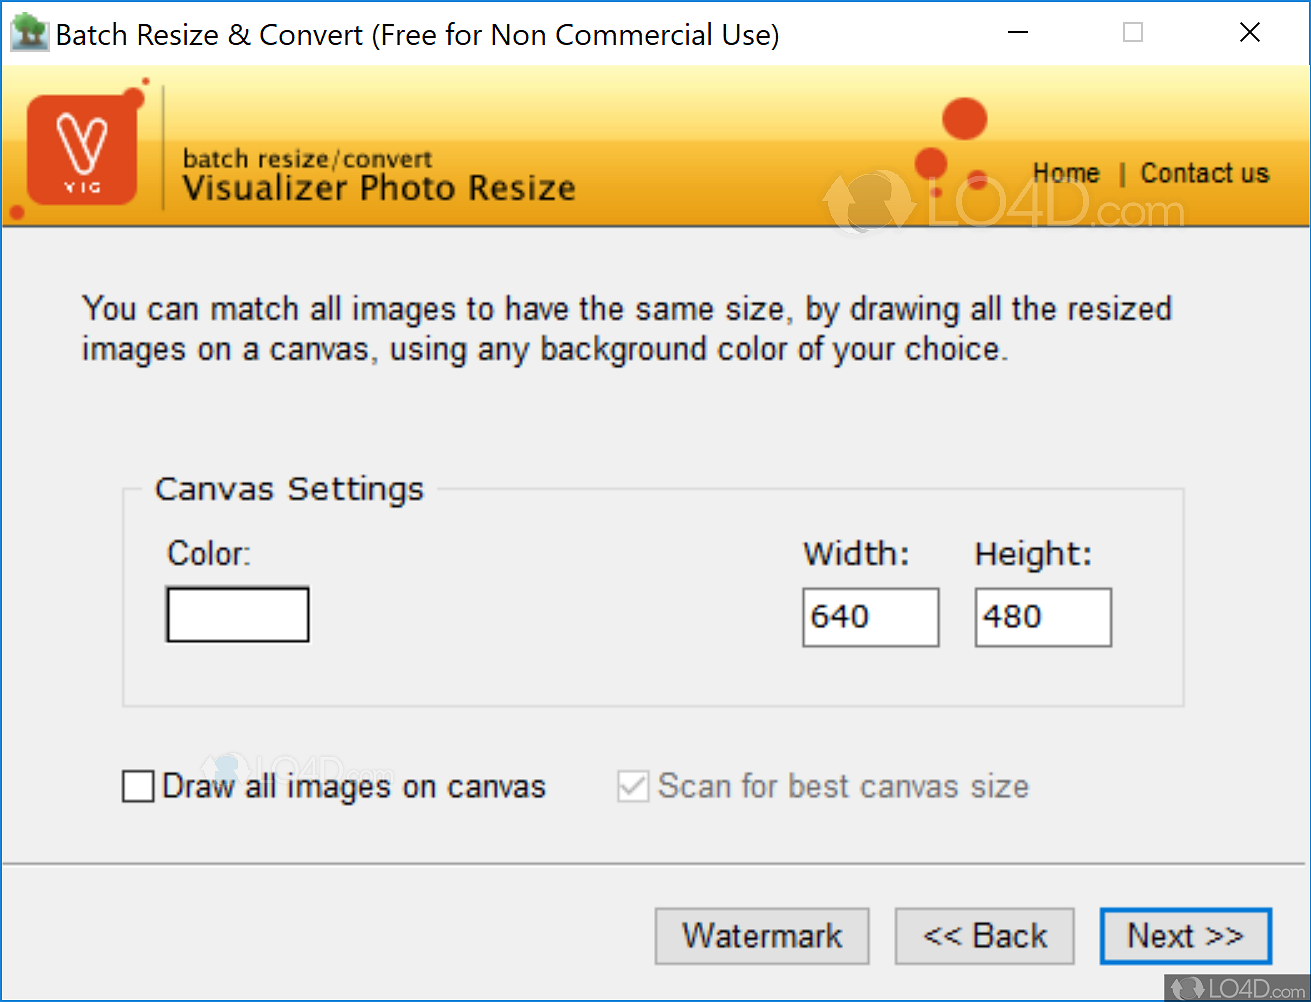 visualizer photo resize